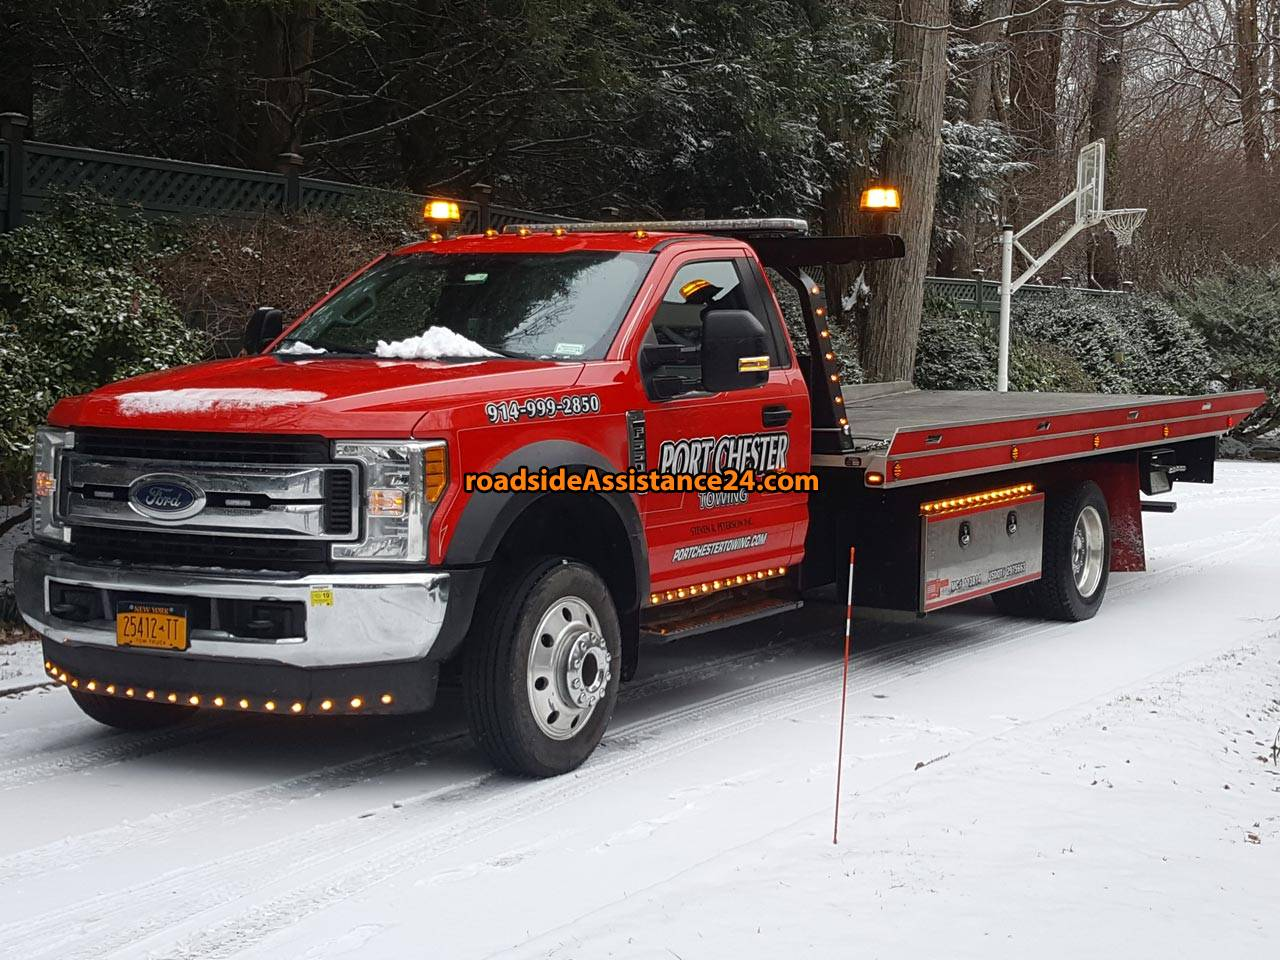 Portchester towing